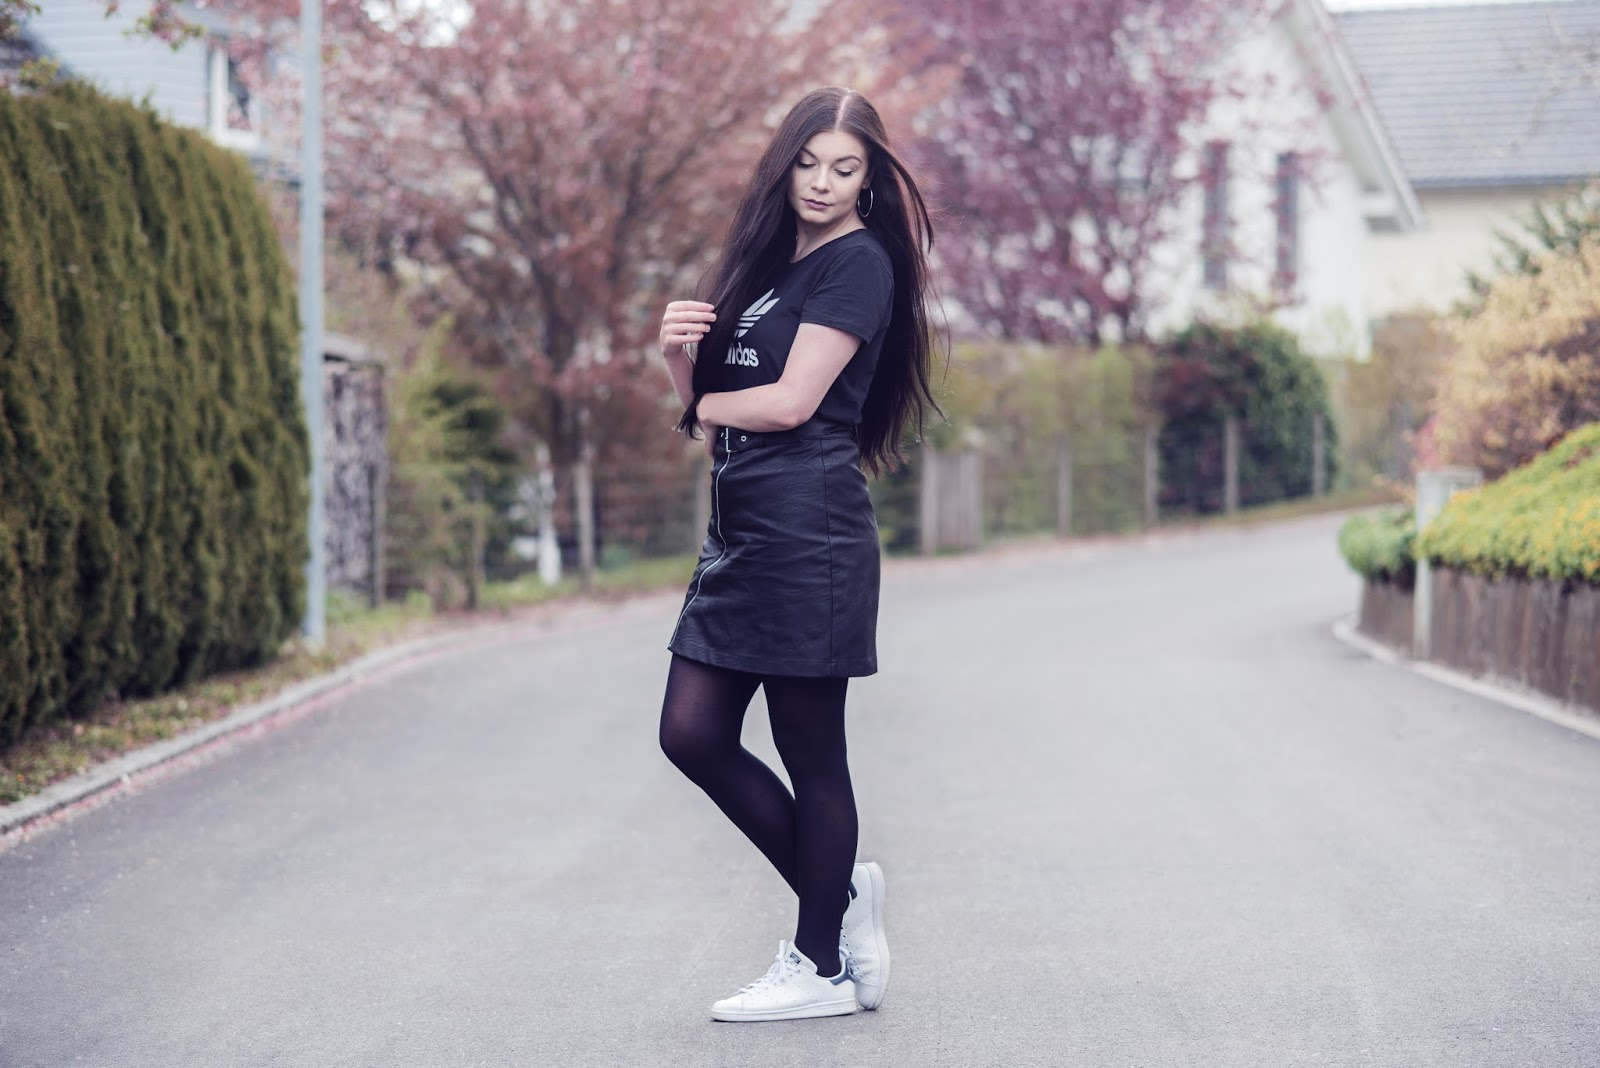 Sporty Minimalist Outfit | Adidas Shirt, Leather Skirt and Sneakers | Rose Kiara Peaches